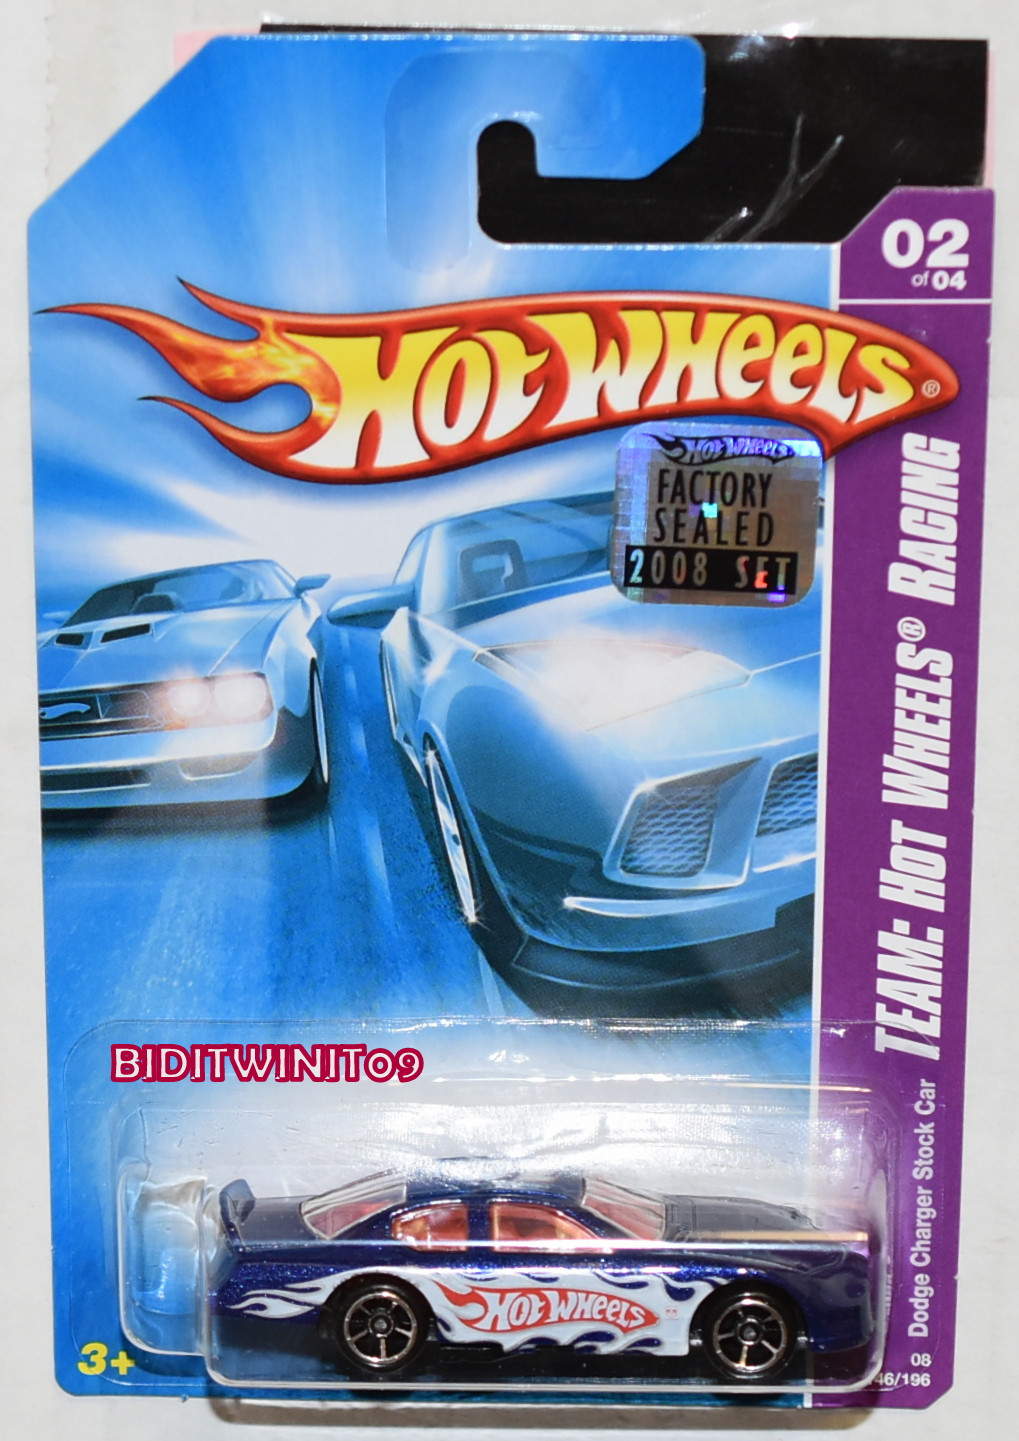 HOT WHEELS 2008 TEAM: HOT WHEELS RACING DODGE CHARGER STOCK CAR FACTORY SEALED